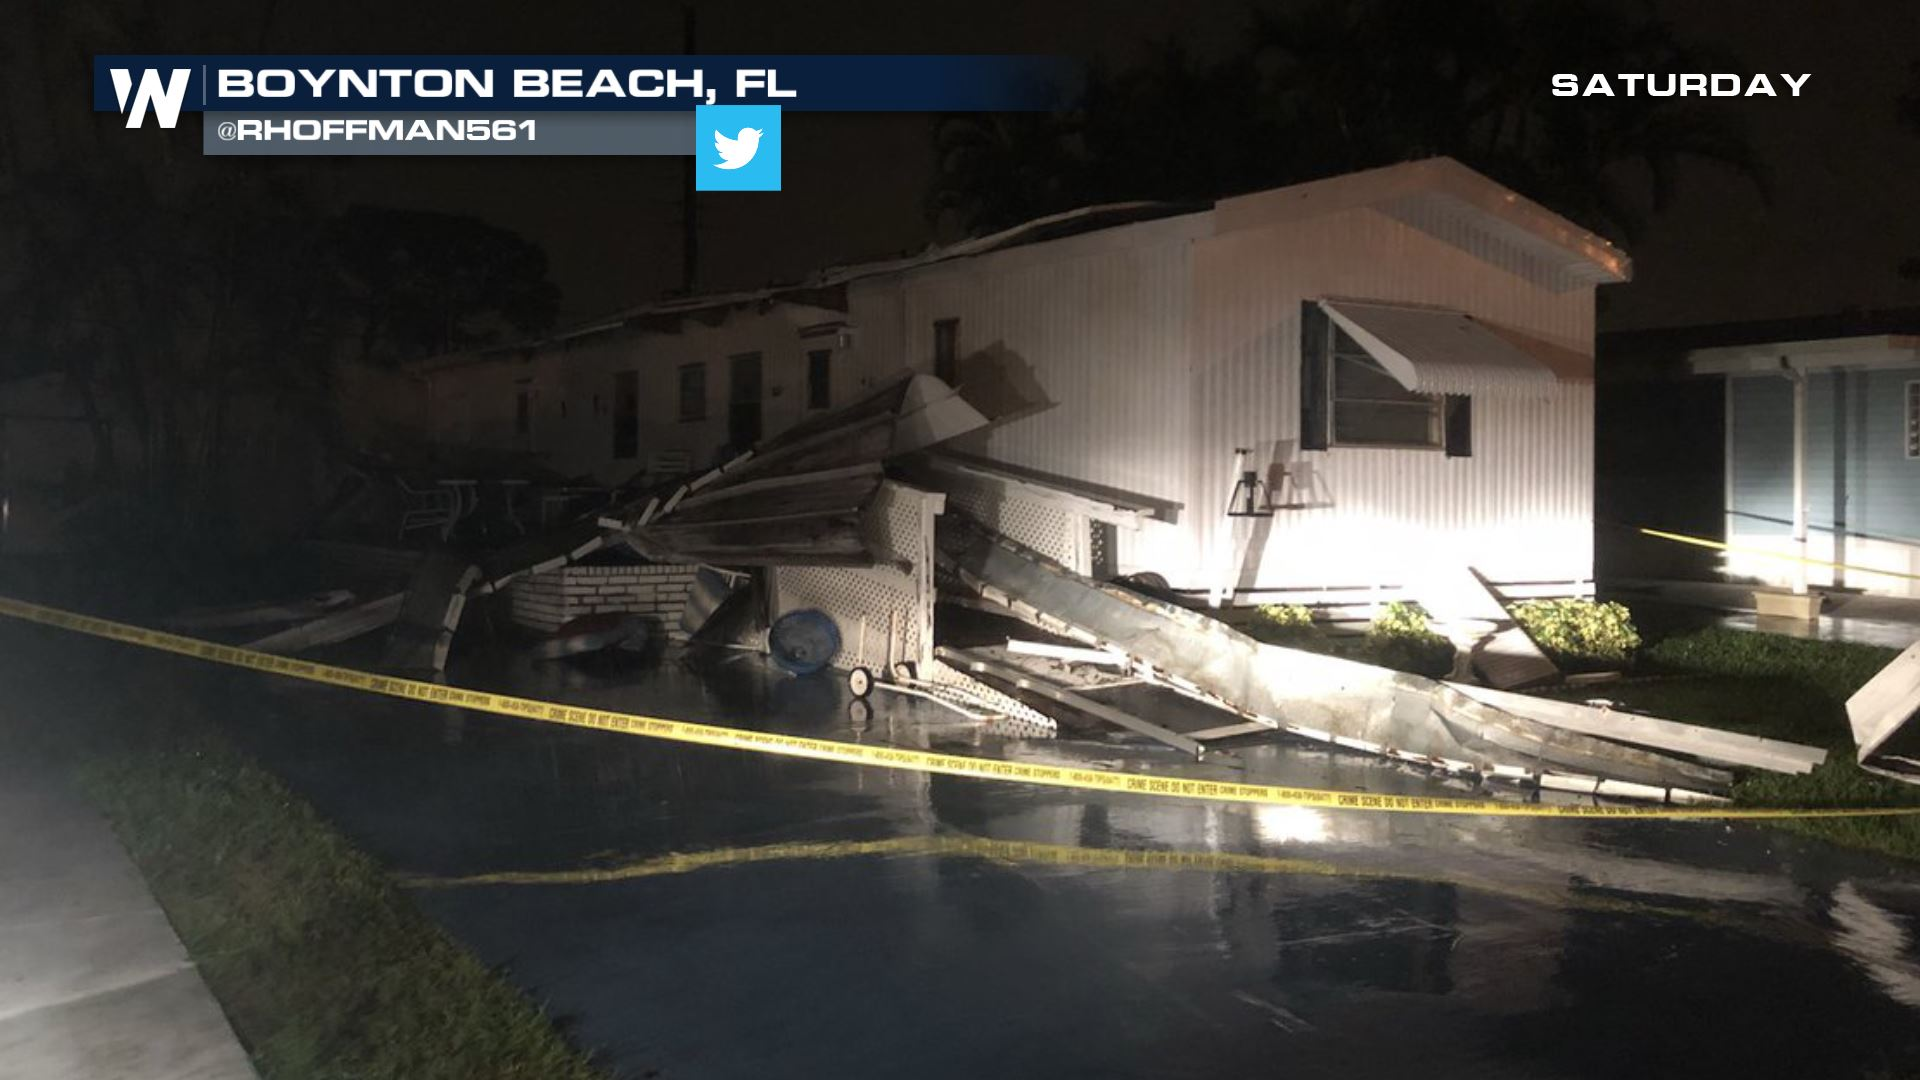 Two tornadoes confirmed in south florida from saturday weathernation another tornado was confirmed to have touched down in west palm beach and a possible third brief tornado took place in another part of west palm beach publicscrutiny Choice Image